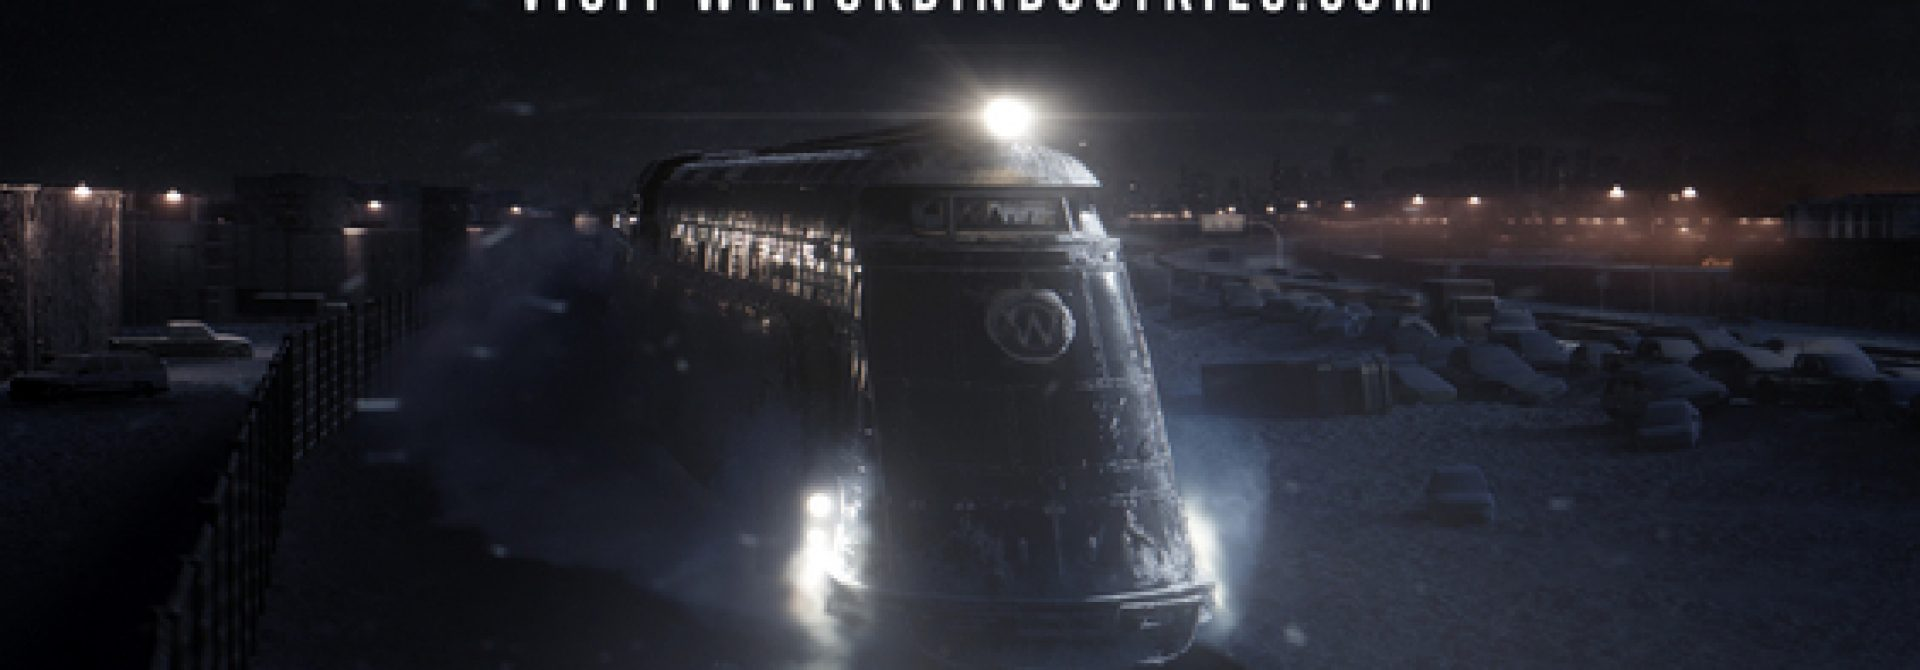 AEW: Dynamite and Snowpiercer both airing on TNT